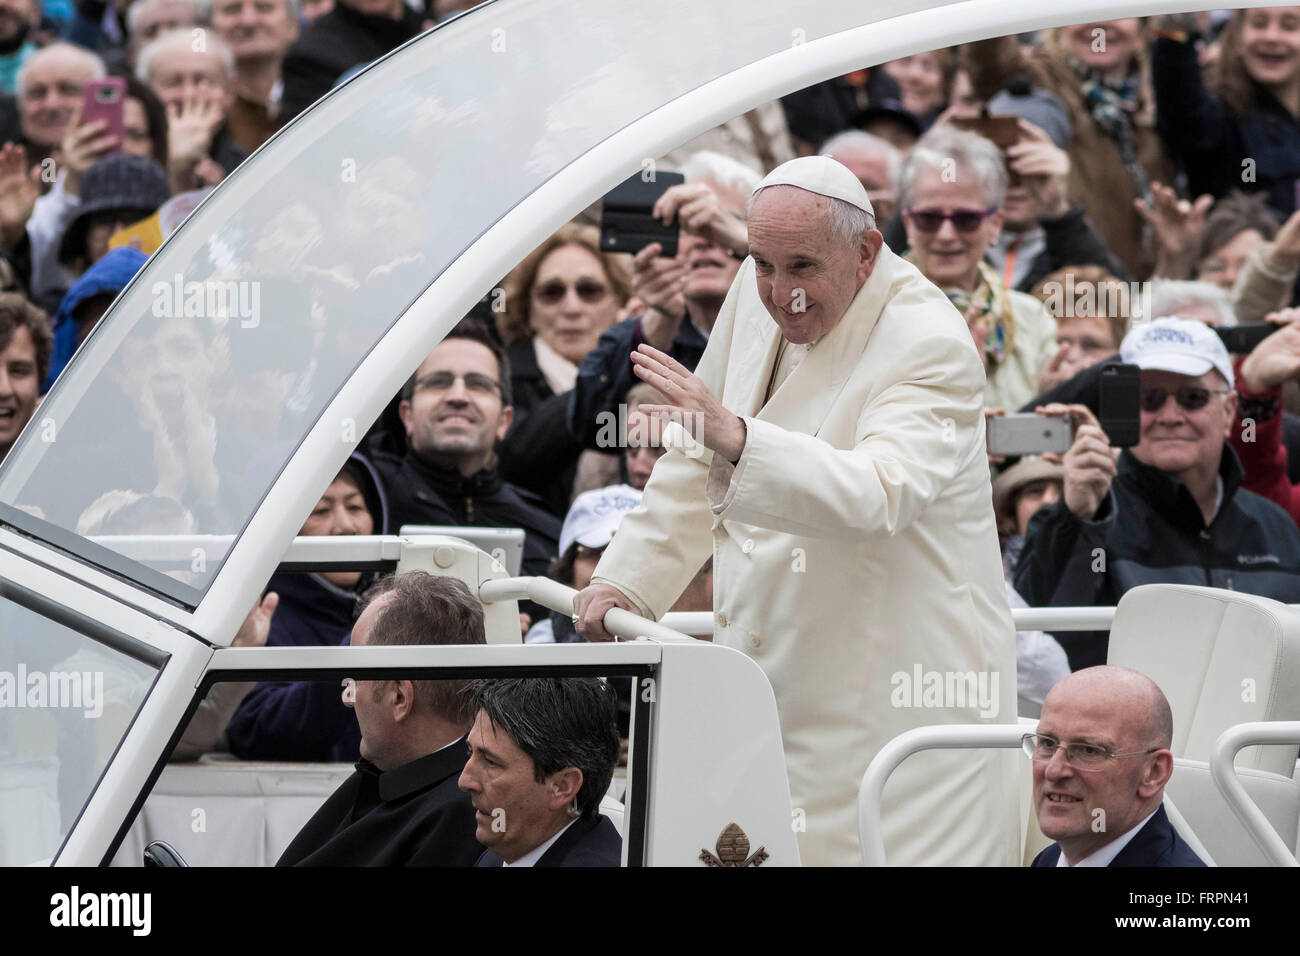 Vatican City, Vatican. 23rd Mar, 2016. Pope Francis greets the faithful as he holds his Weekly General Audience - Stock Image